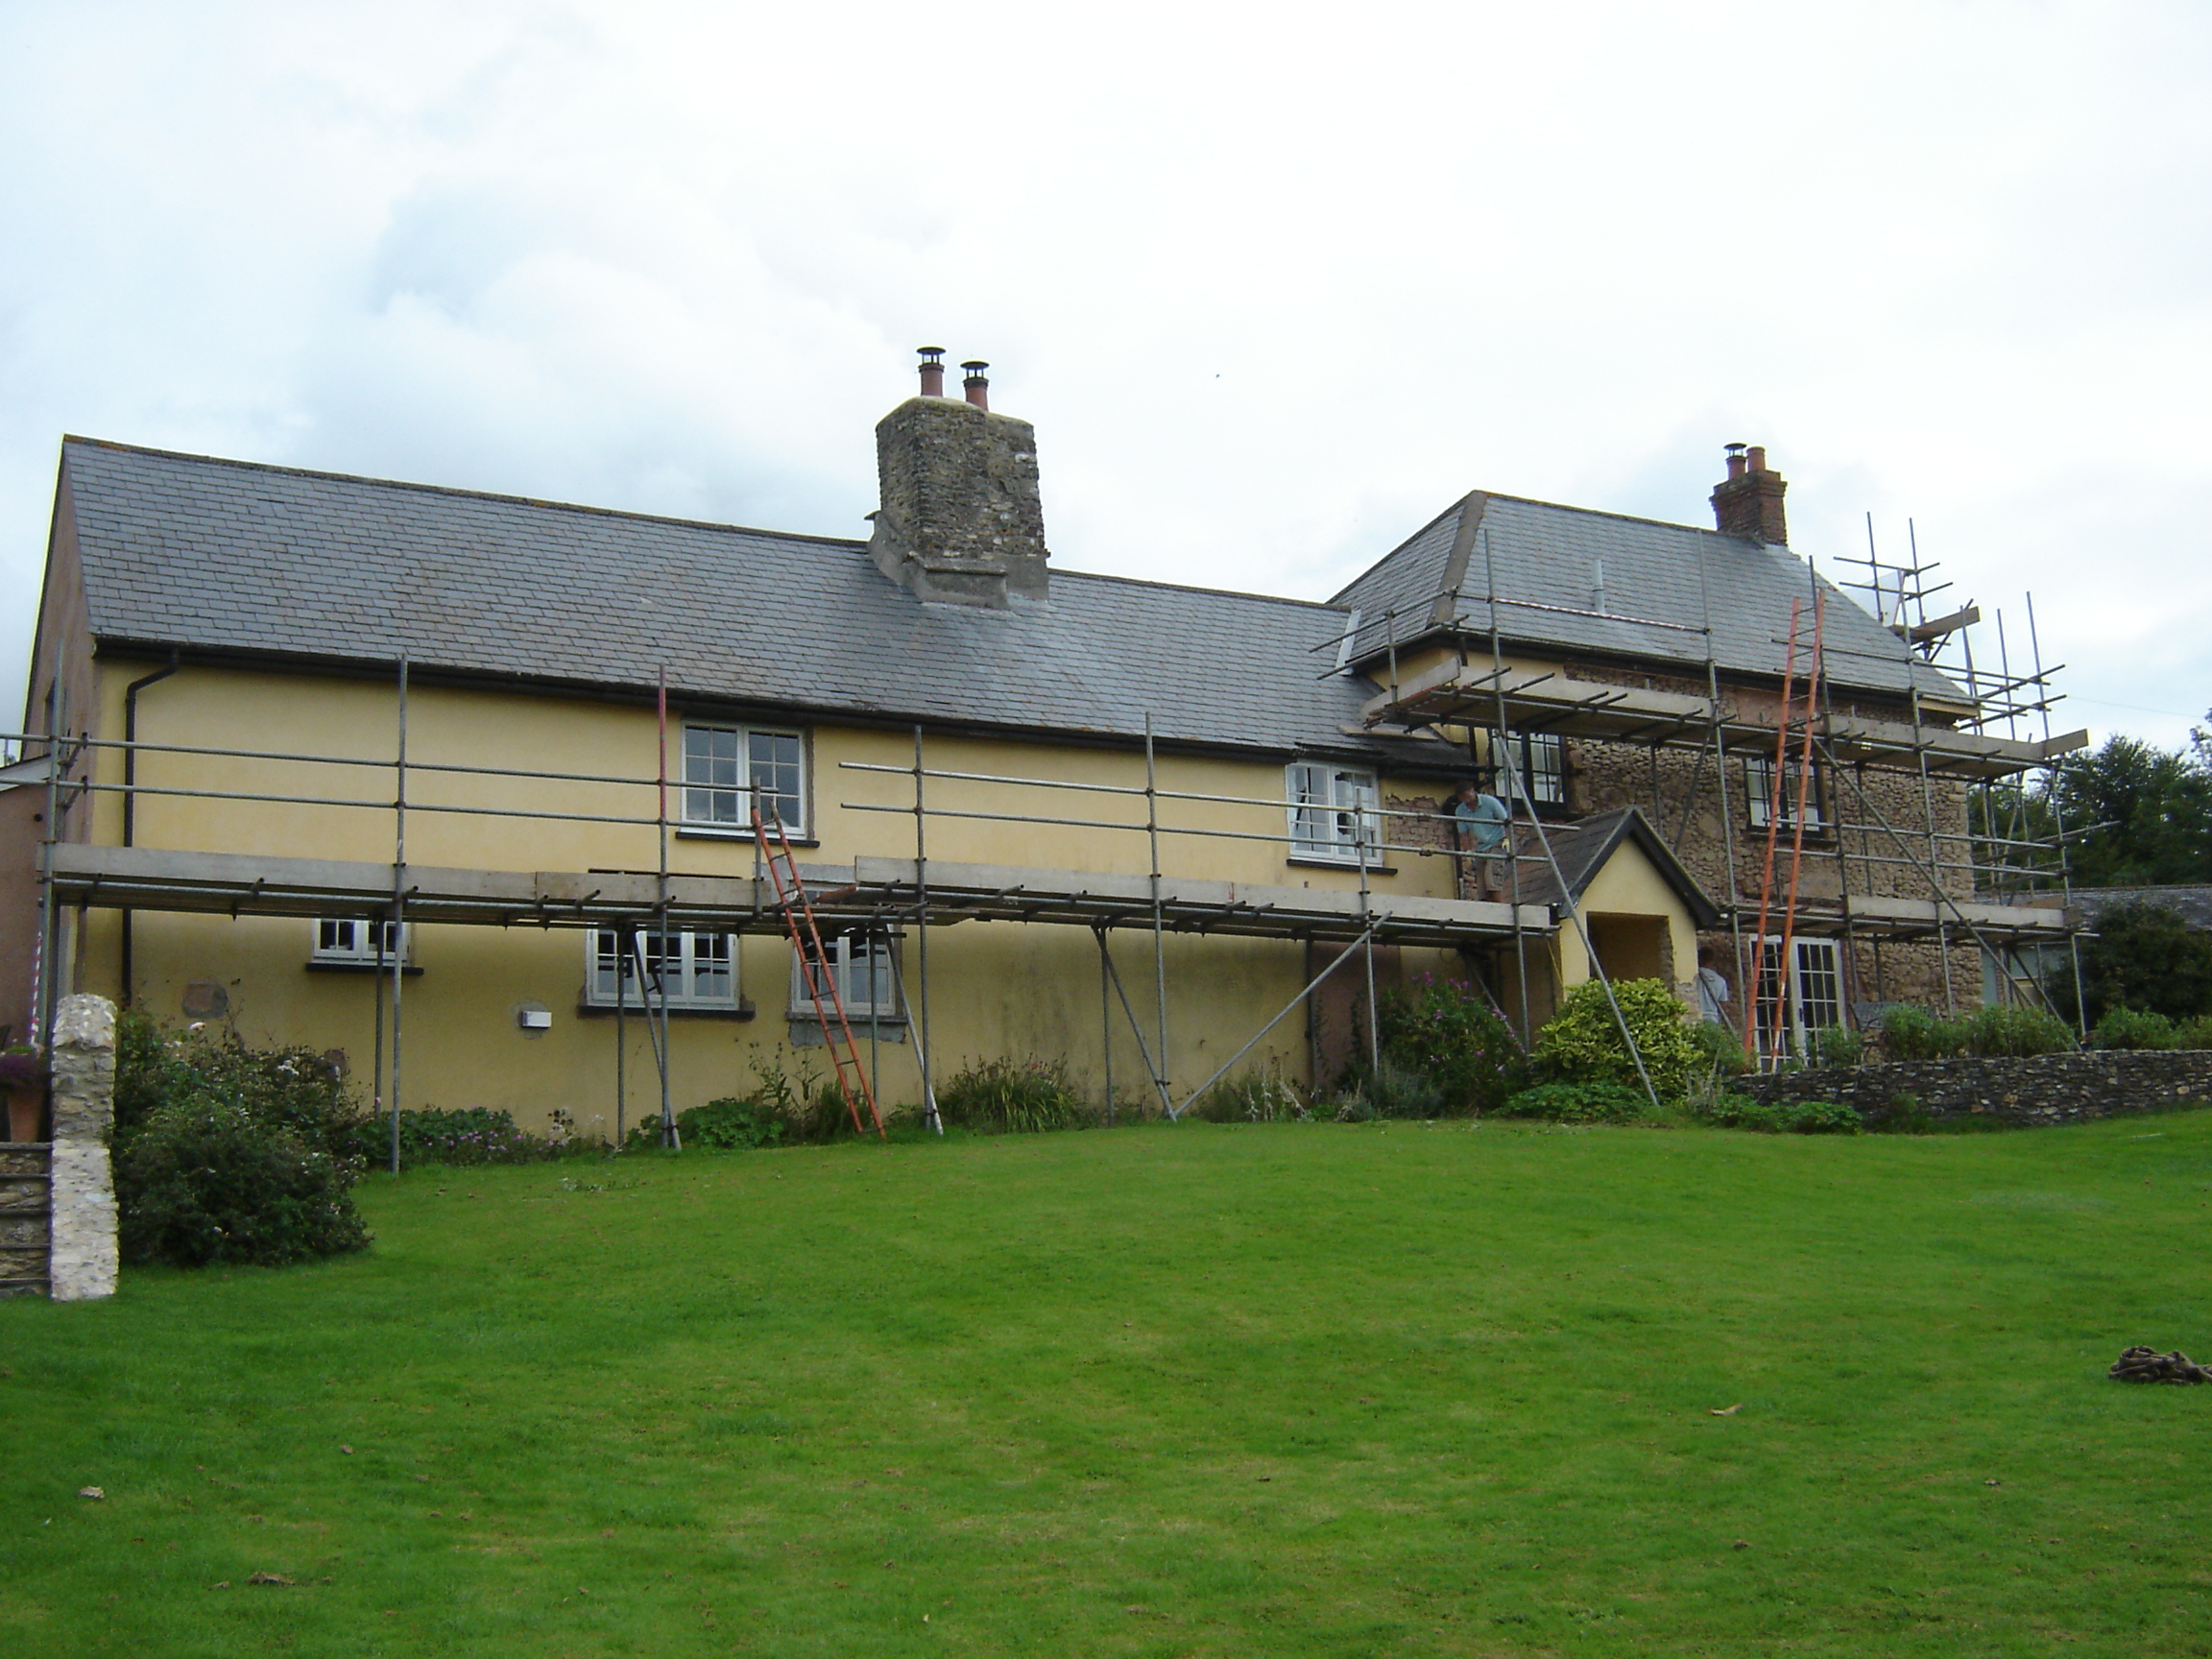 https://www.earthouses.co.uk/wp-content/uploads/2015/09/Coombe-Hayes-Farm-Render-stripping.jpg